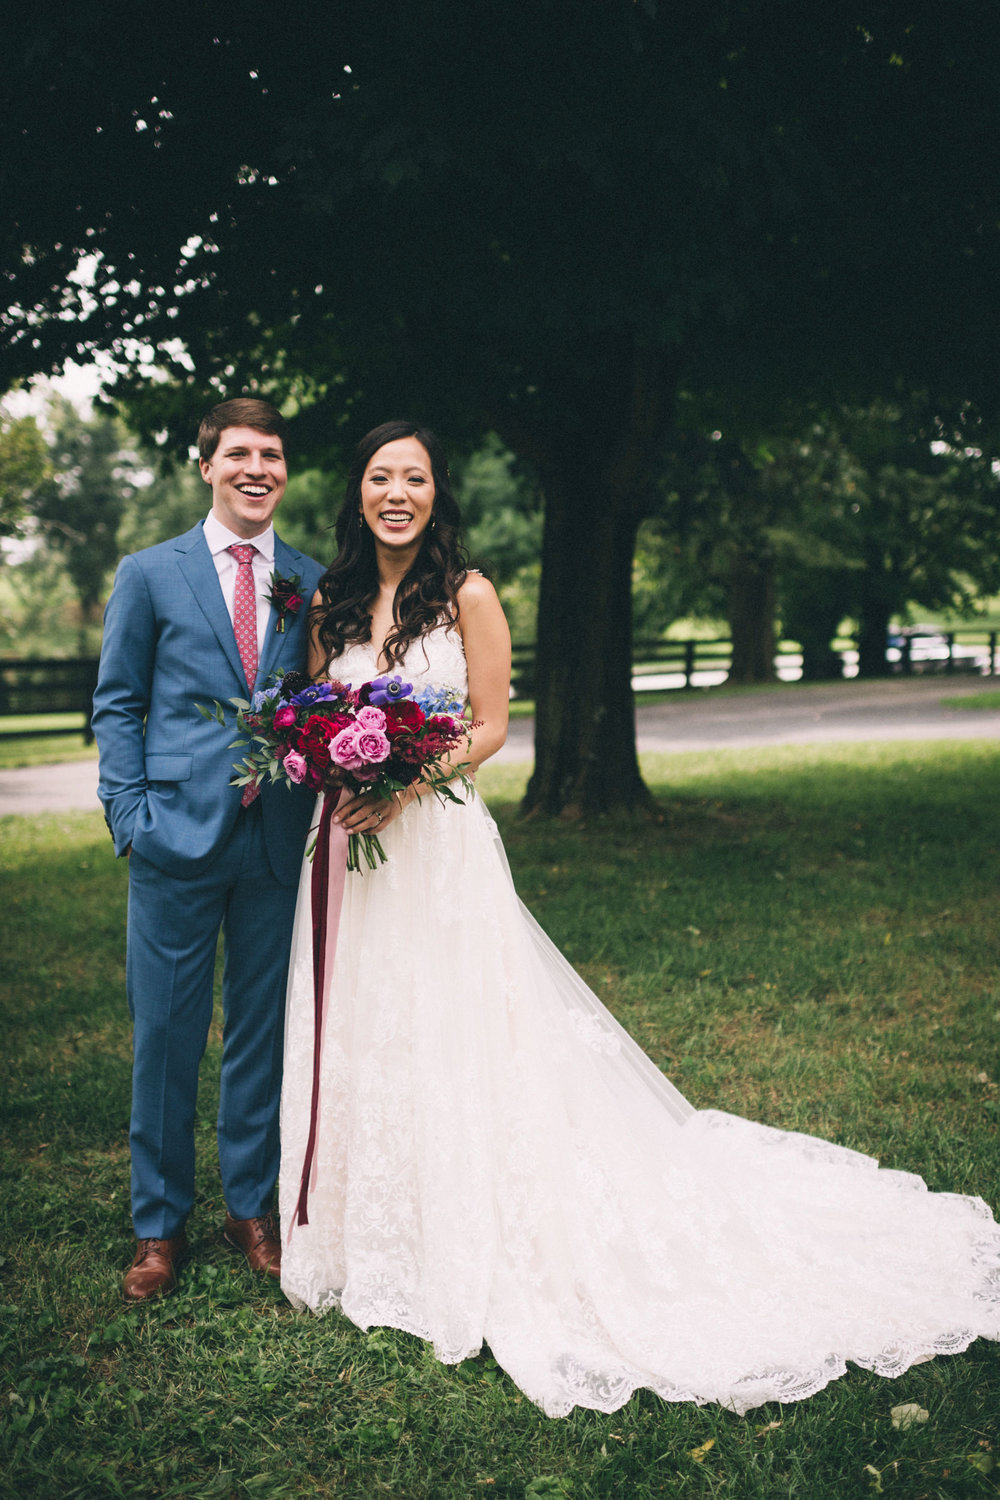 Louisville-Kentucky-Wedding-and-Elopement-Photographer-Sarah-Katherine-Davis-Photography-Summer-Jewel-Toned-Wedding-Chineese-Tea-Ceremony-Warrenwood-Manor-Danville-182.jpg